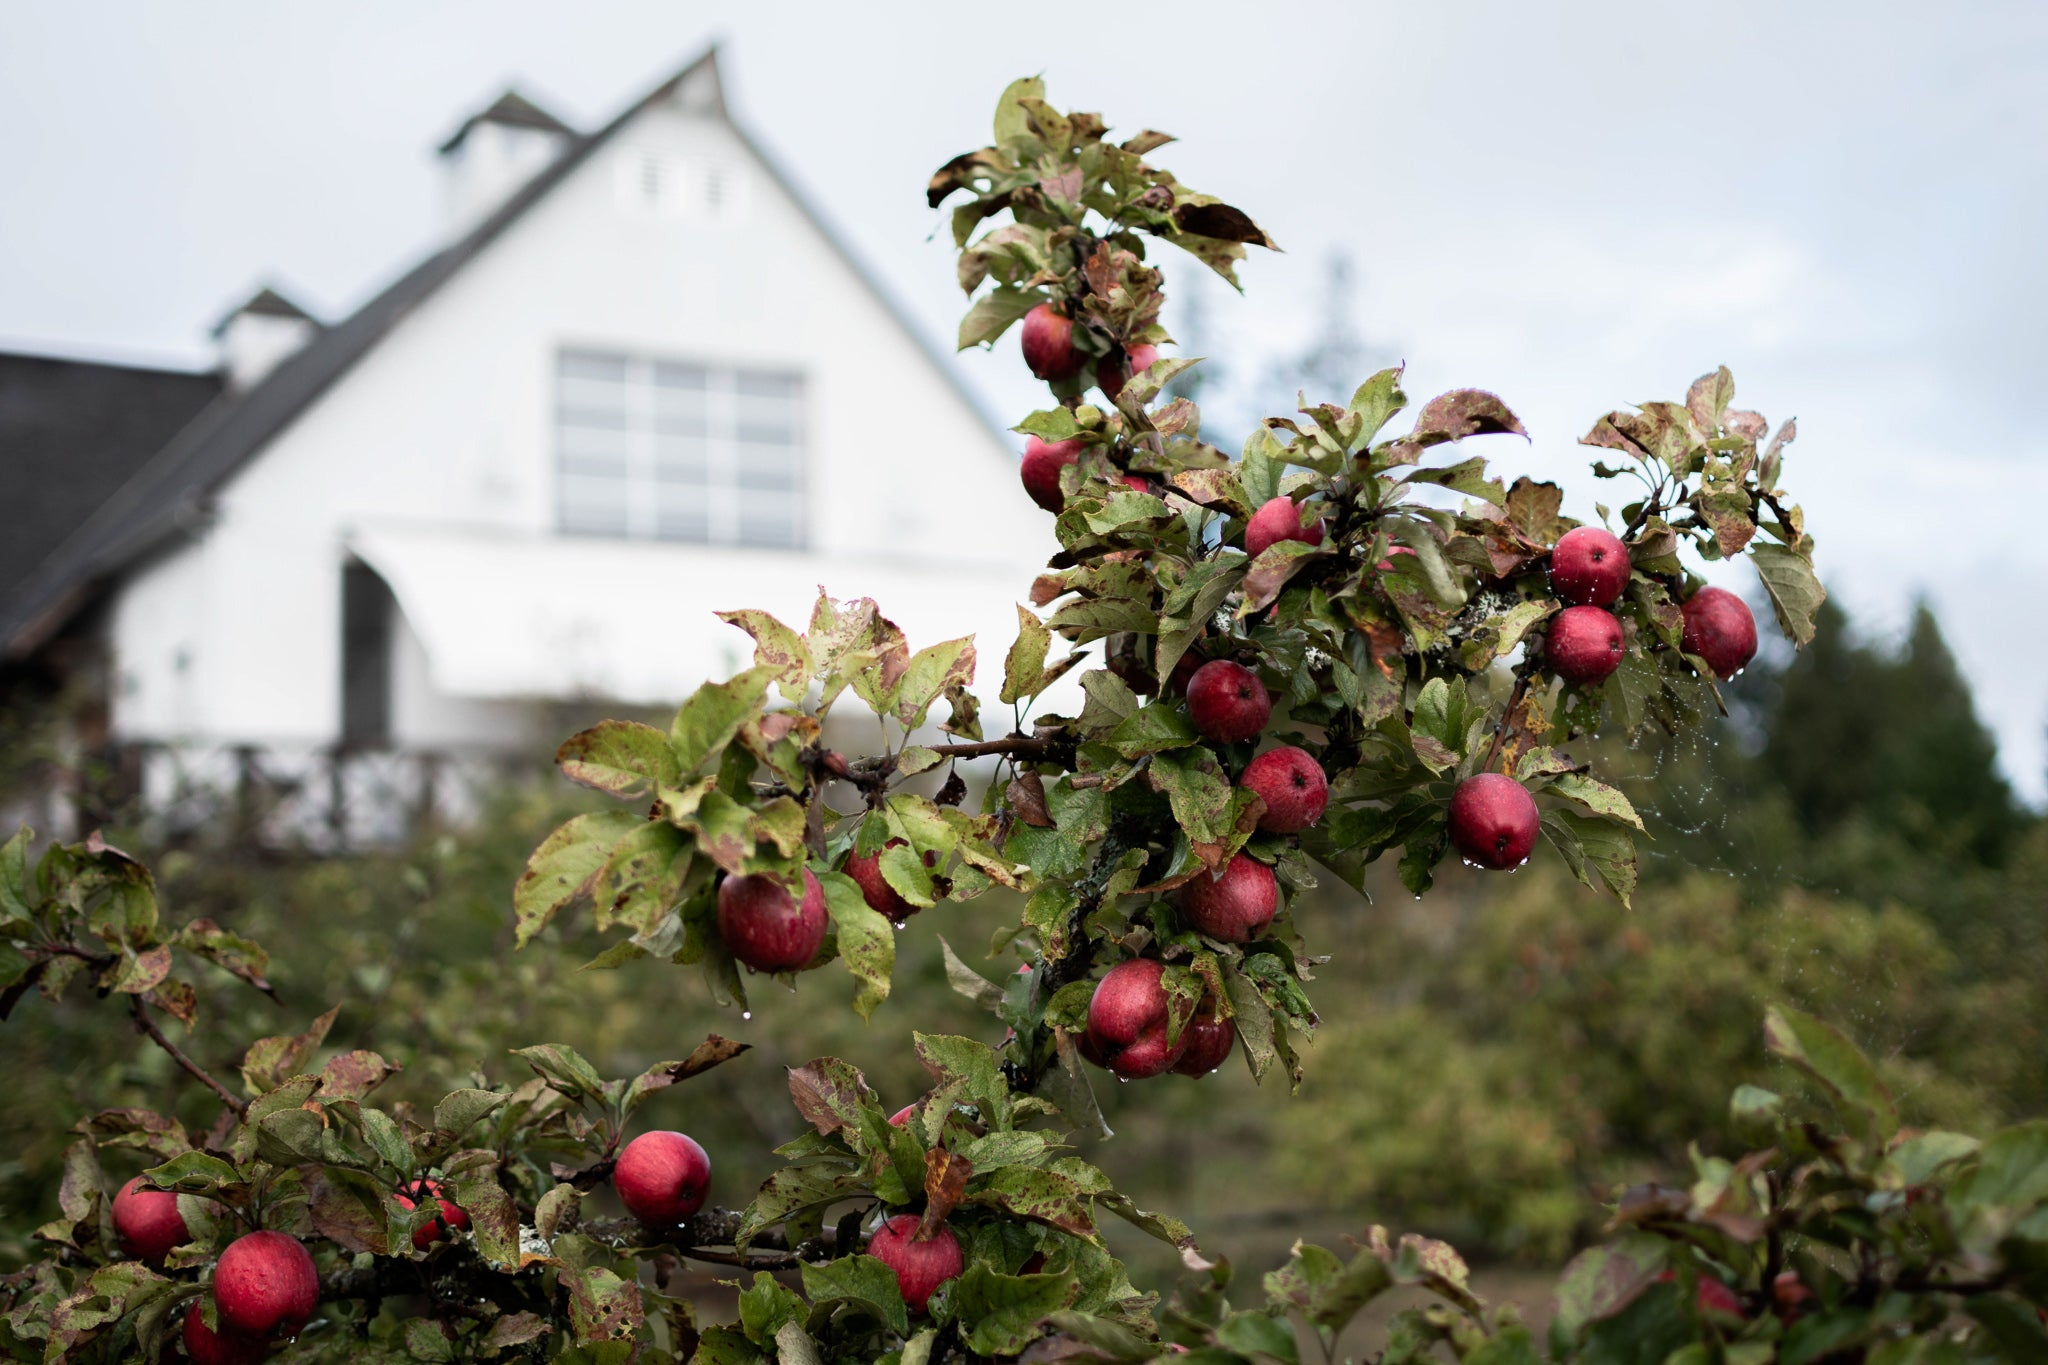 Sea Cider Farm and Ciderhouse orchard in the fall ready to harvest the apples